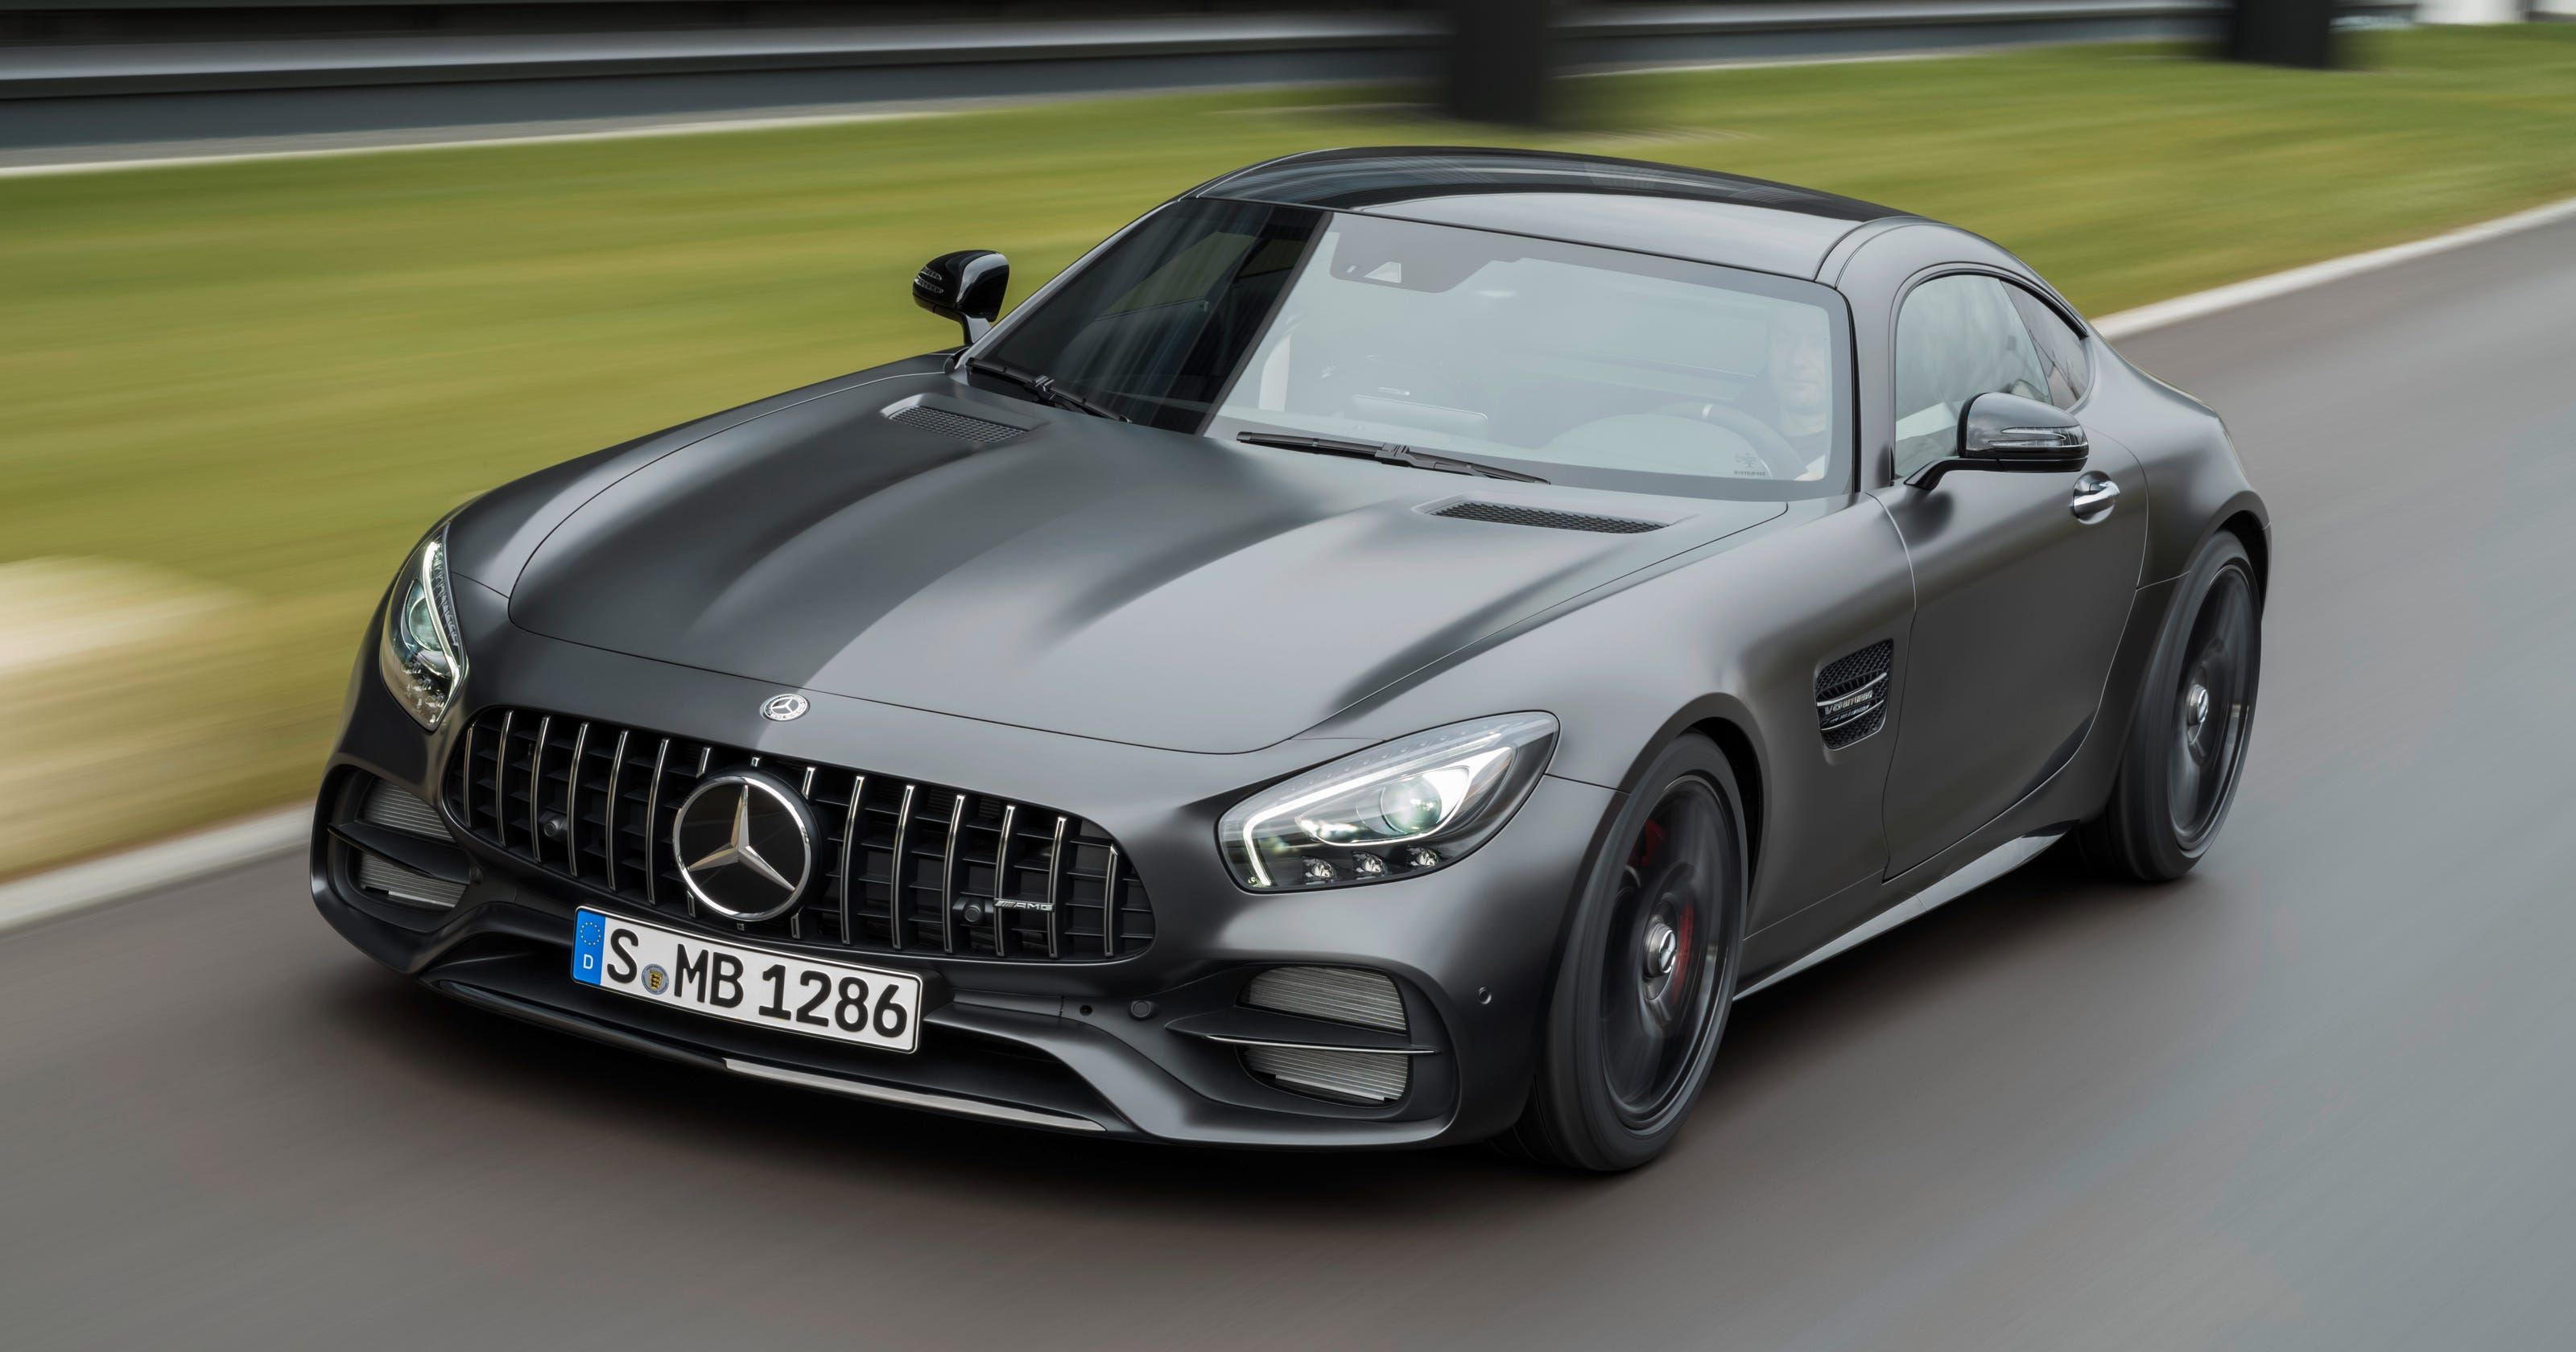 Mercedes unveils high-performance AMG models at NAIAS